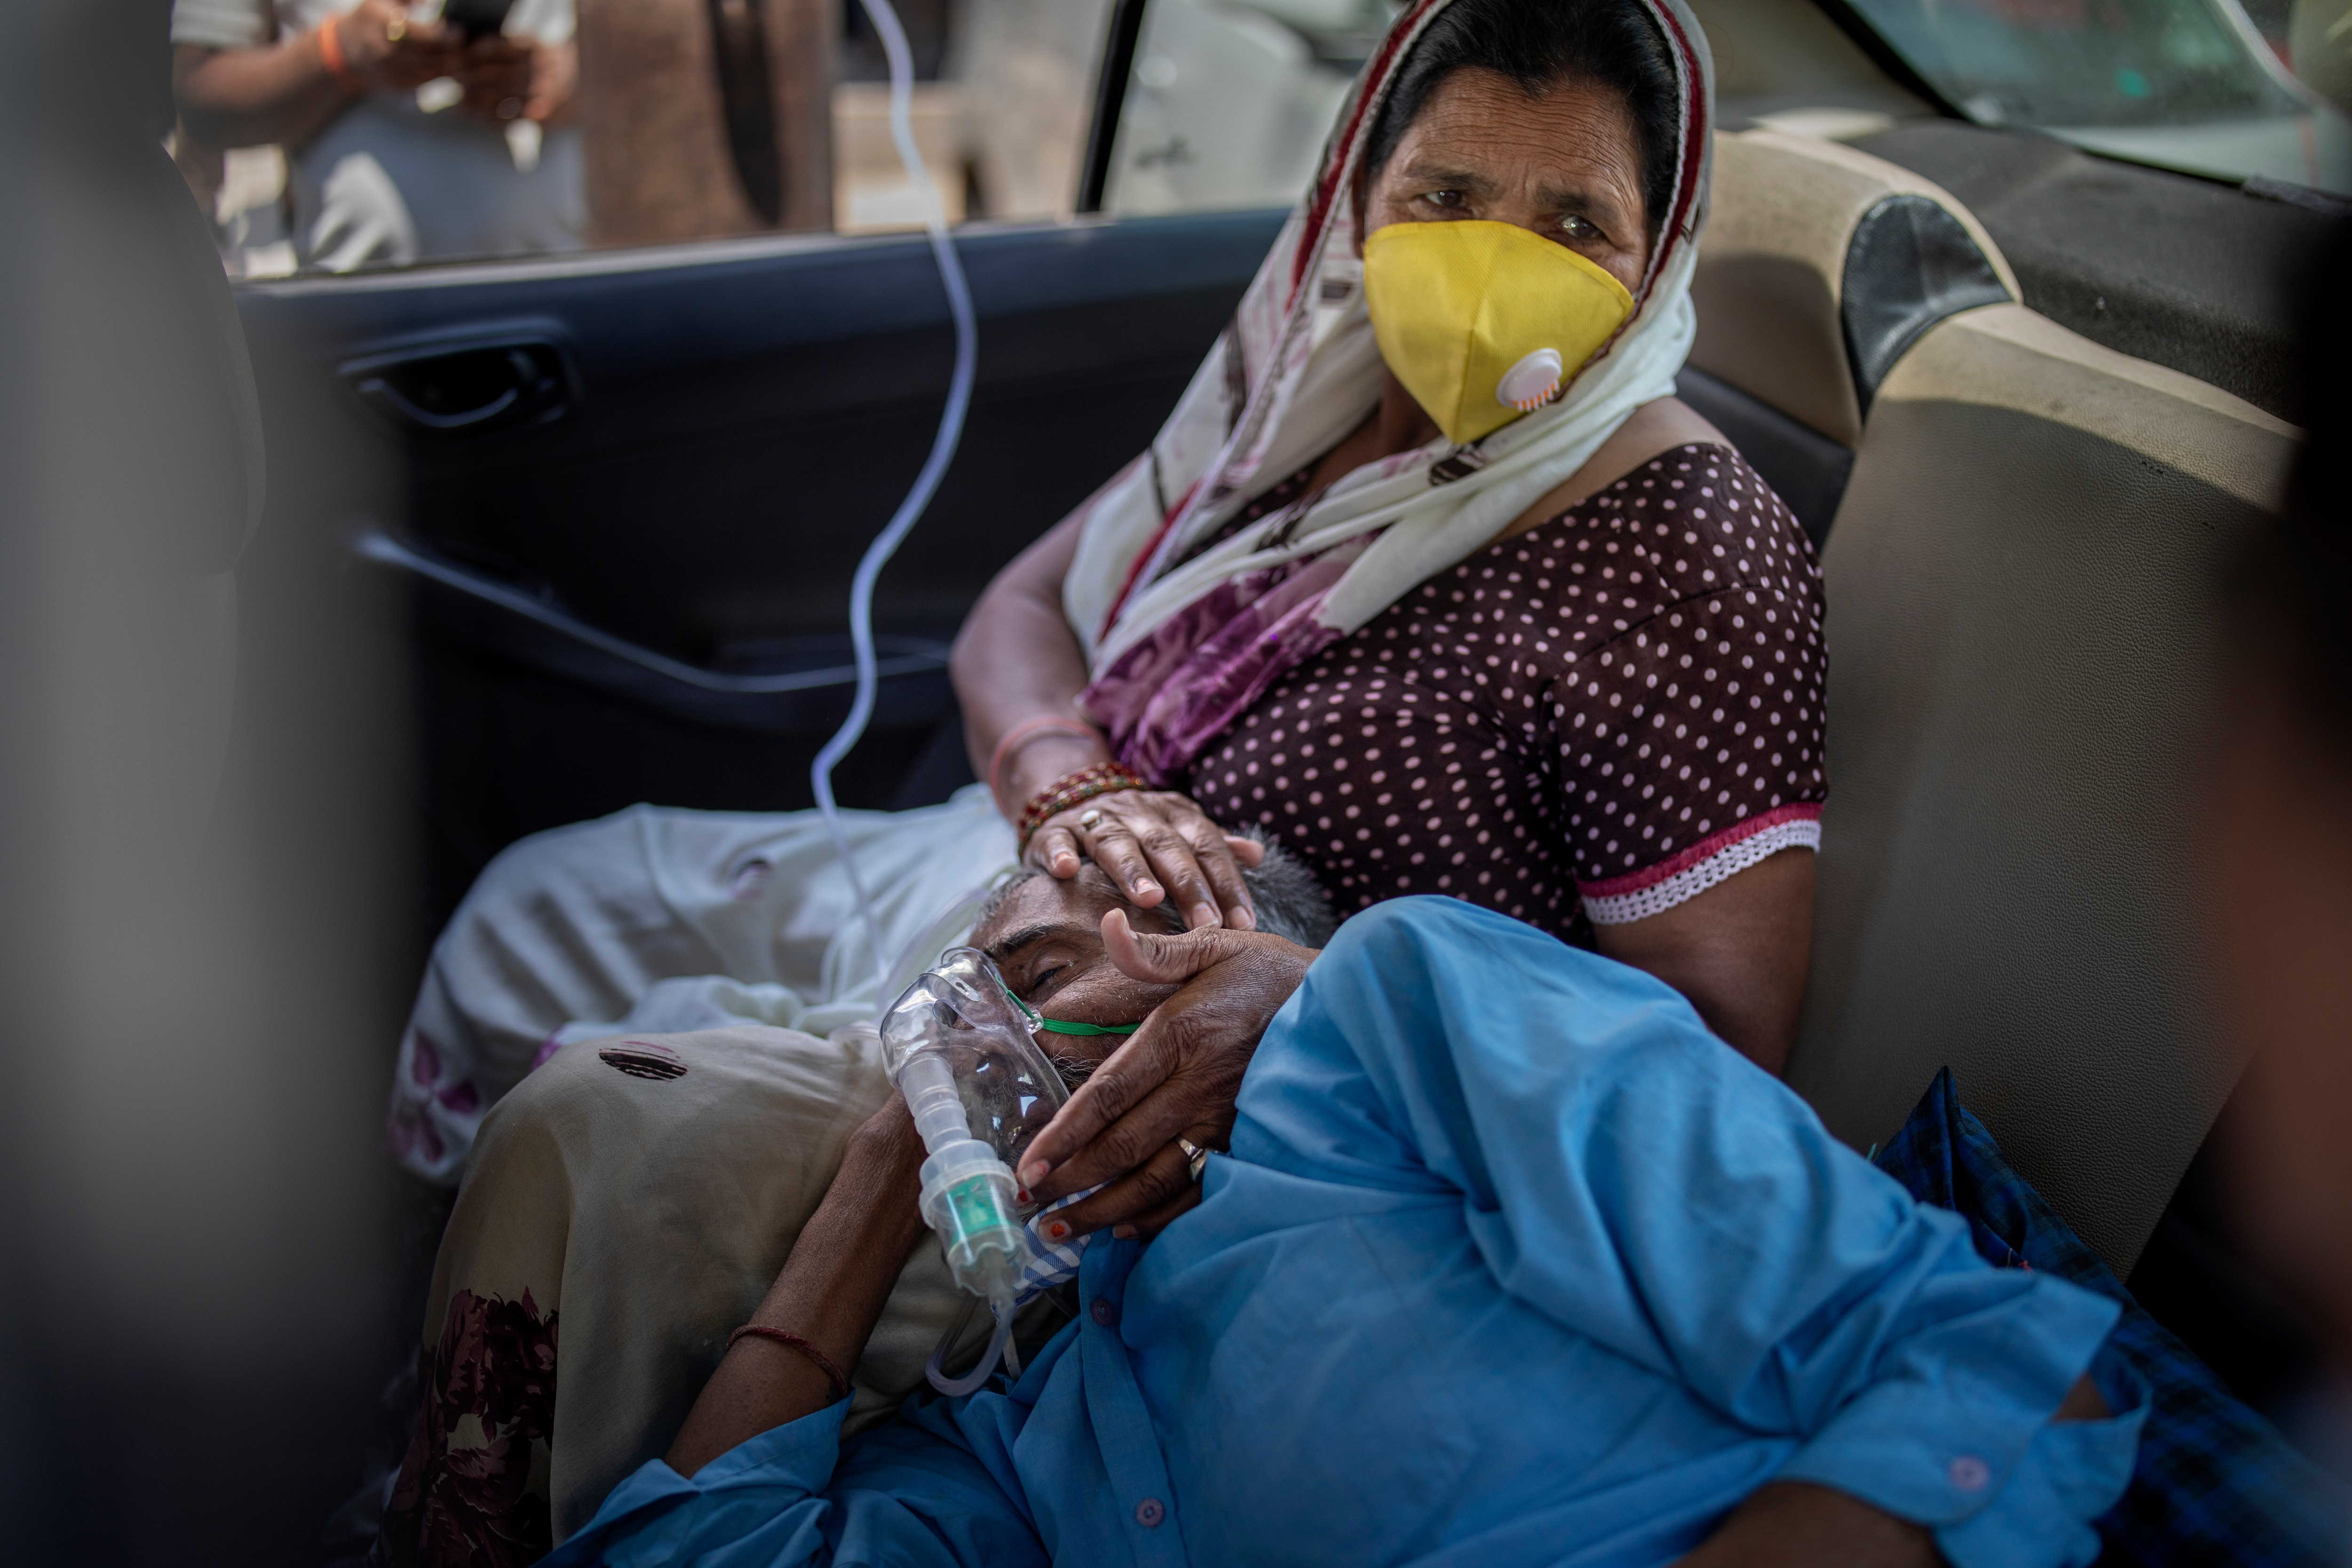 A patient breathes with the help of oxygen provided by a Gurdwara, Sikh place of worship, inside a car in New Delhi, India.